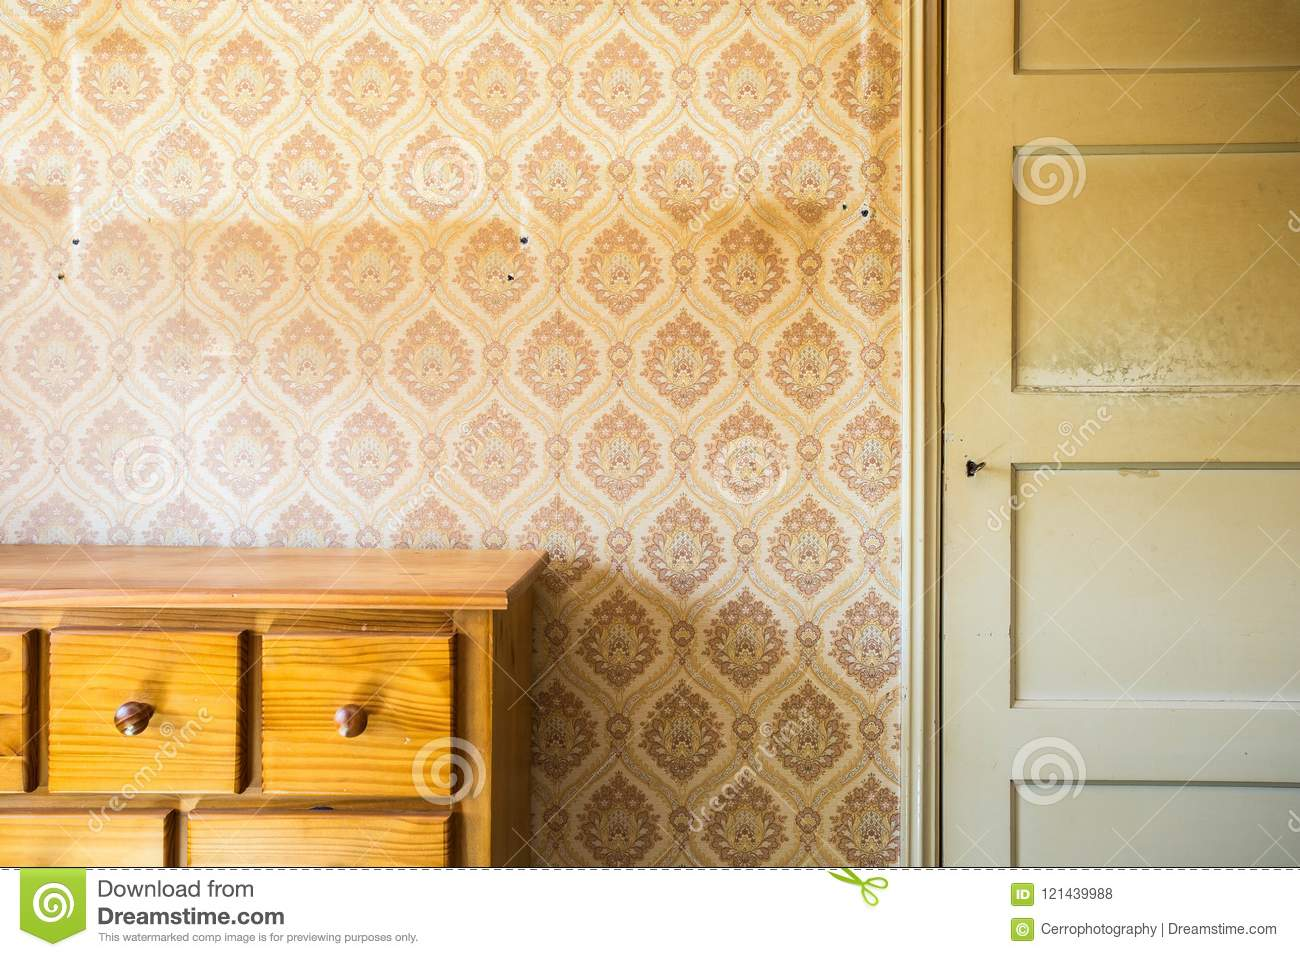 Vintage Room With Pattern Wallpaper And Old Fashioned Closet